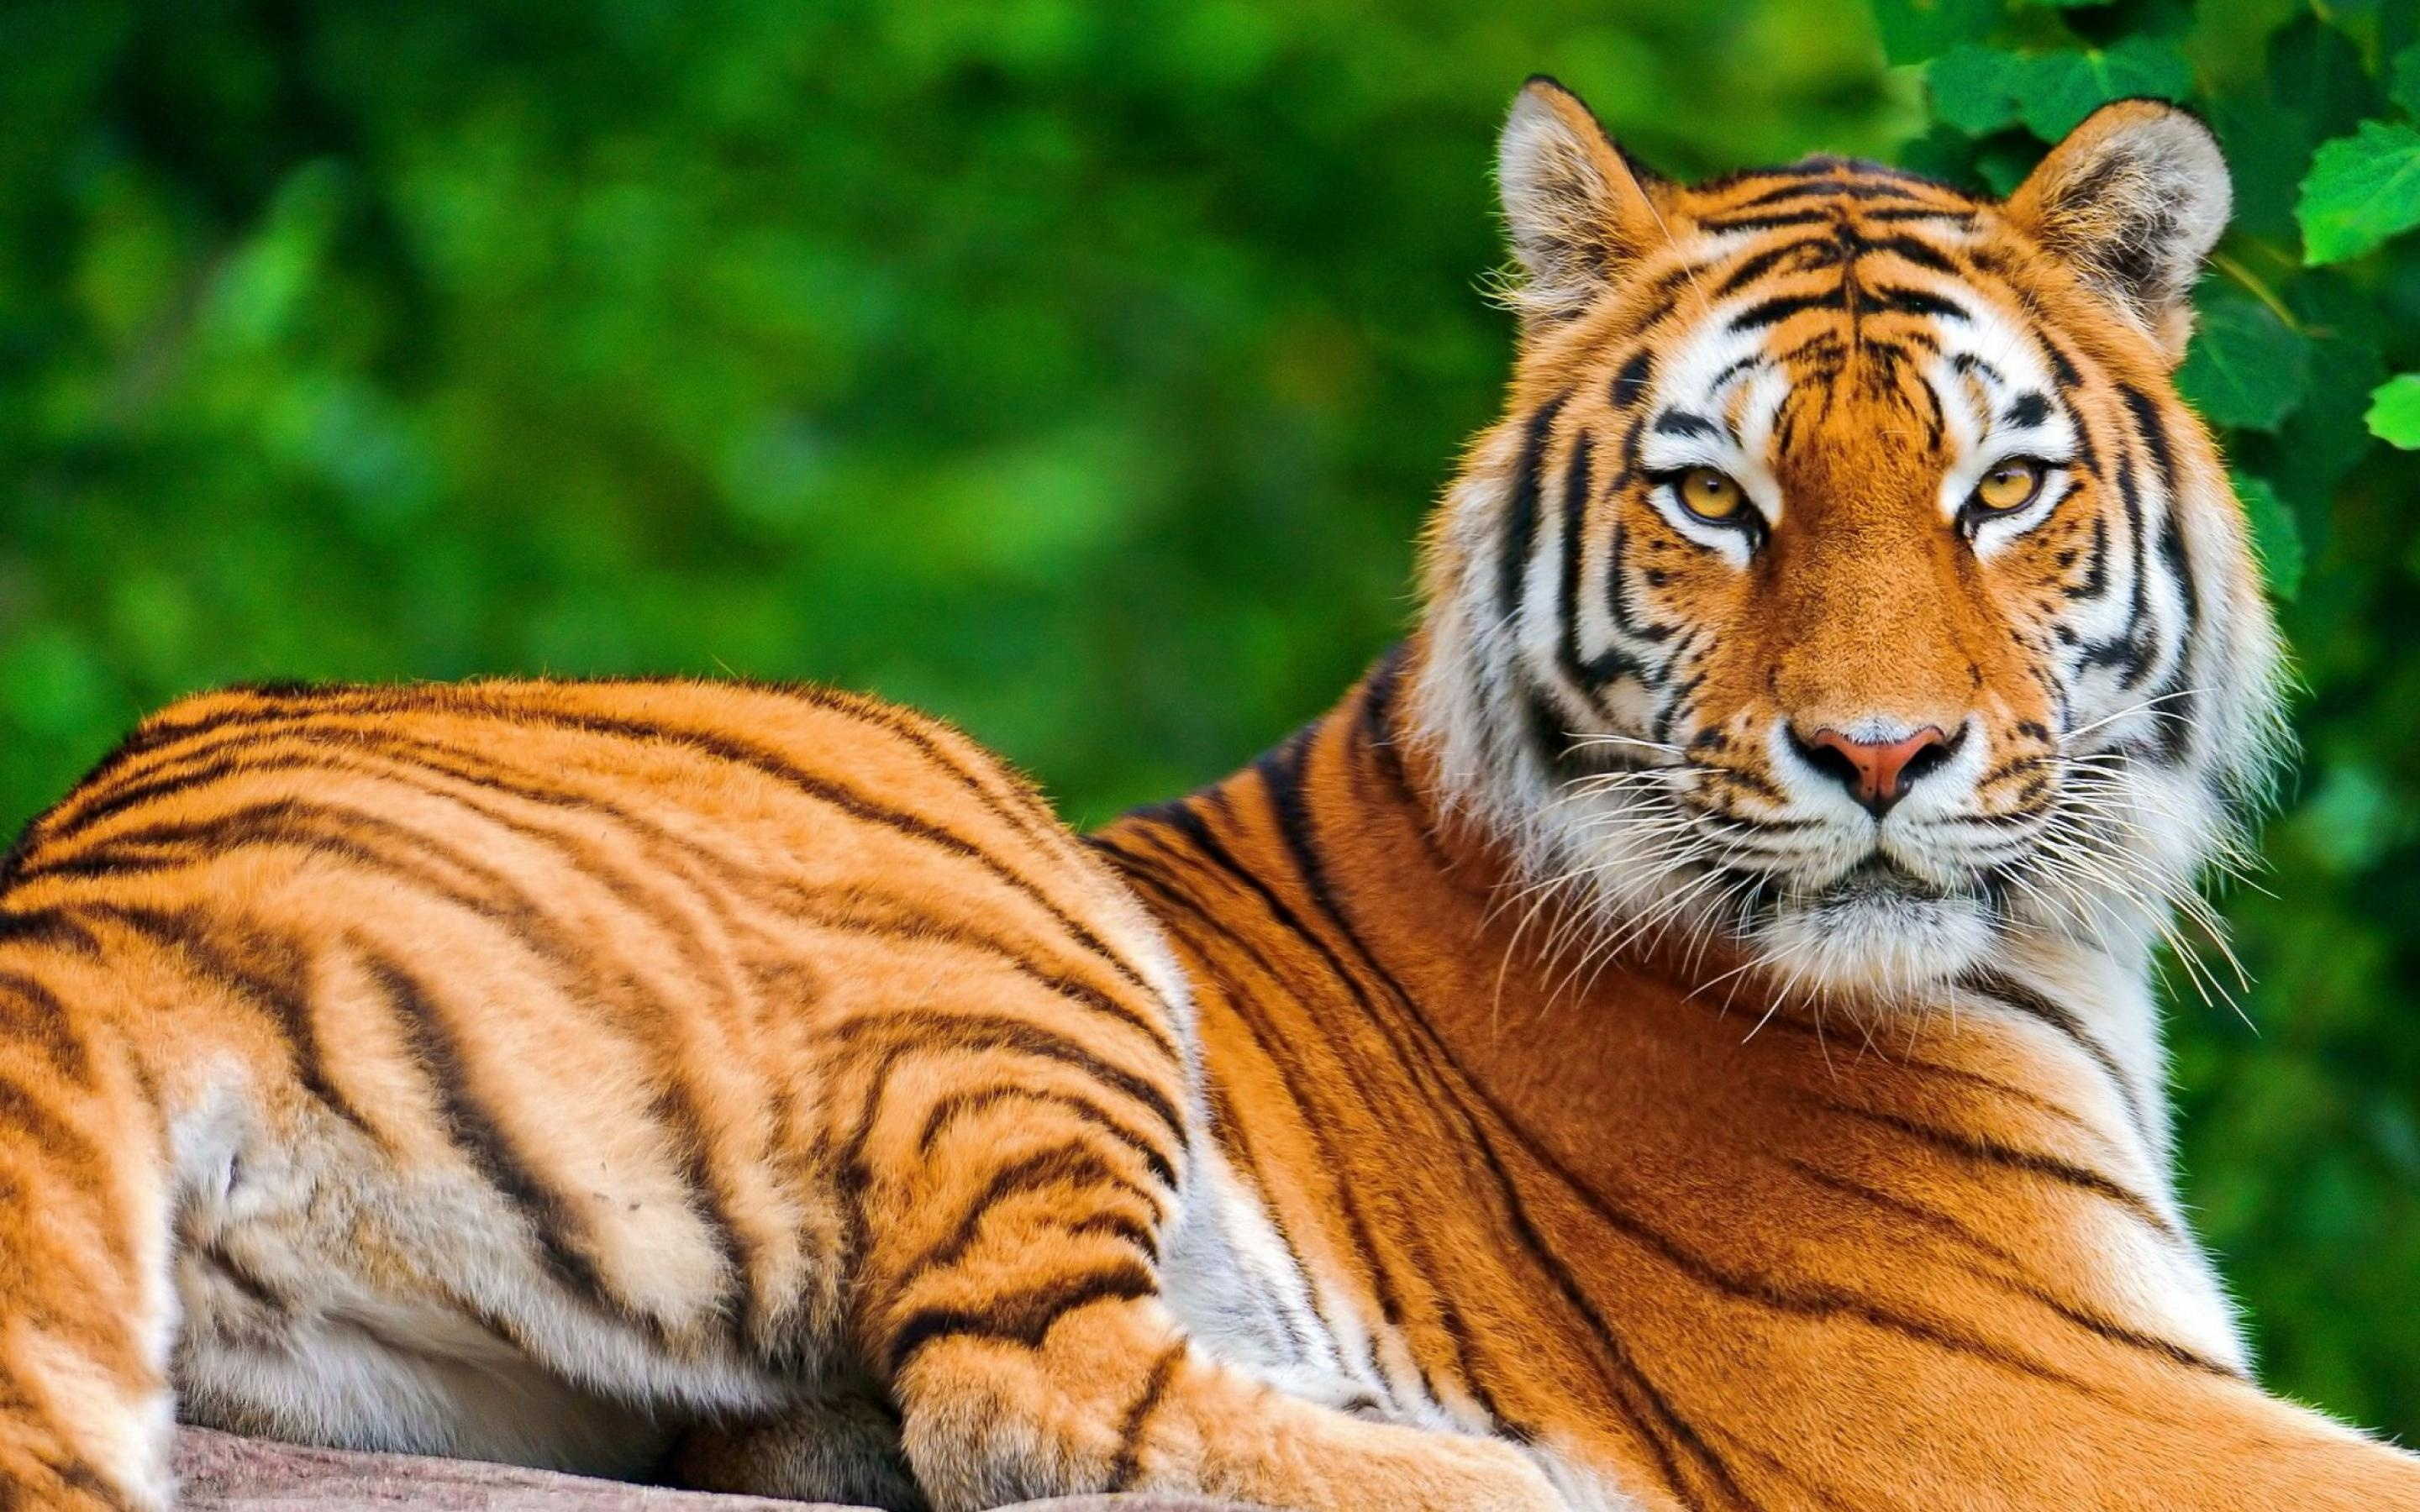 tigers pictures